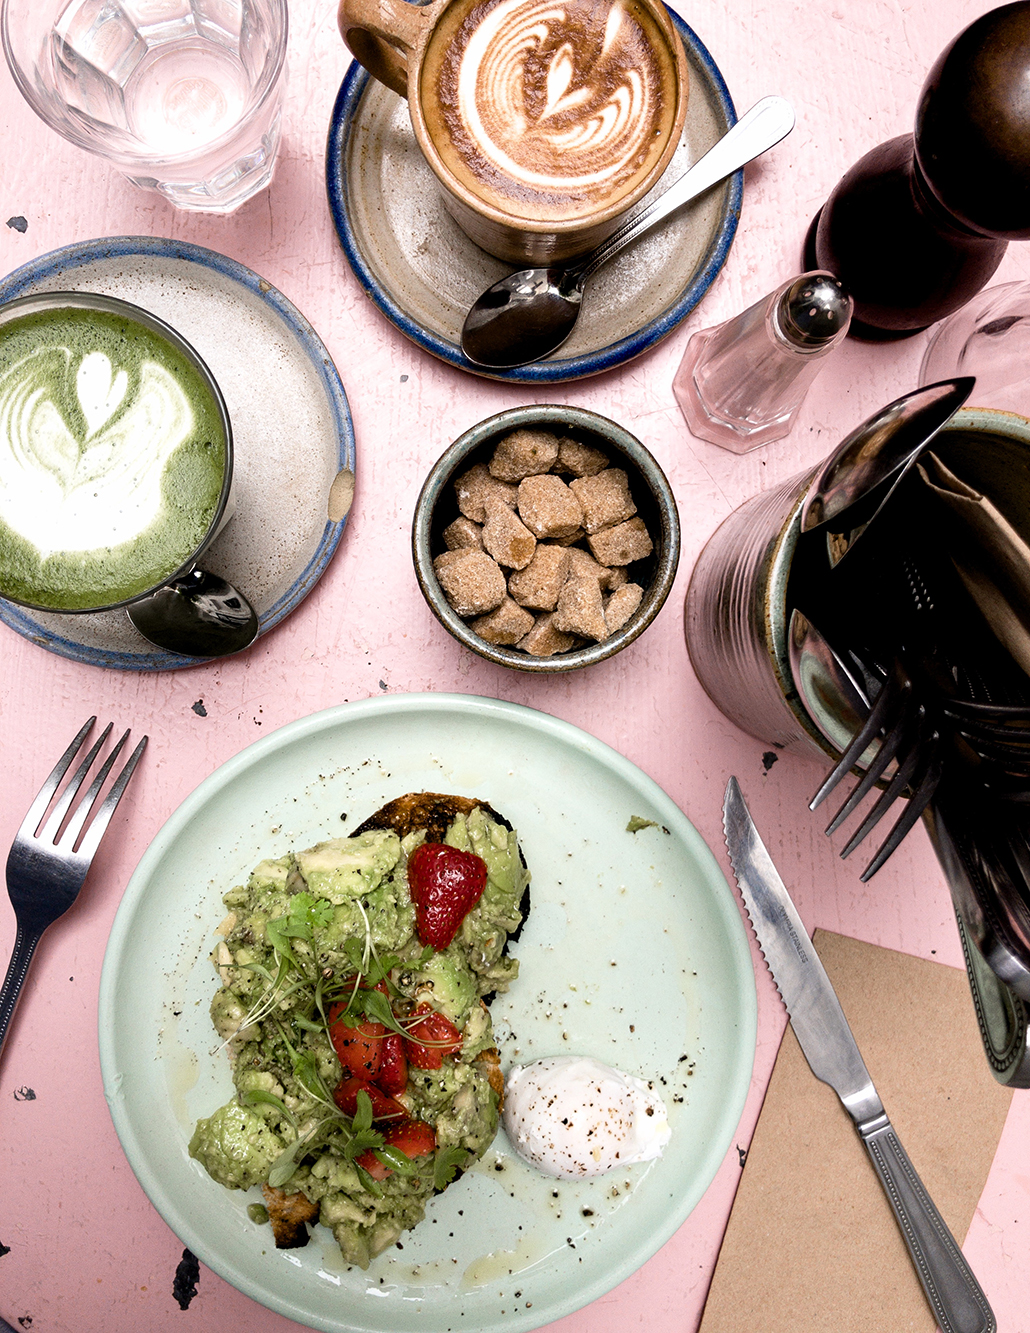 Avocado Toast Londres London bonnes adresses lunch dejeuner test avis